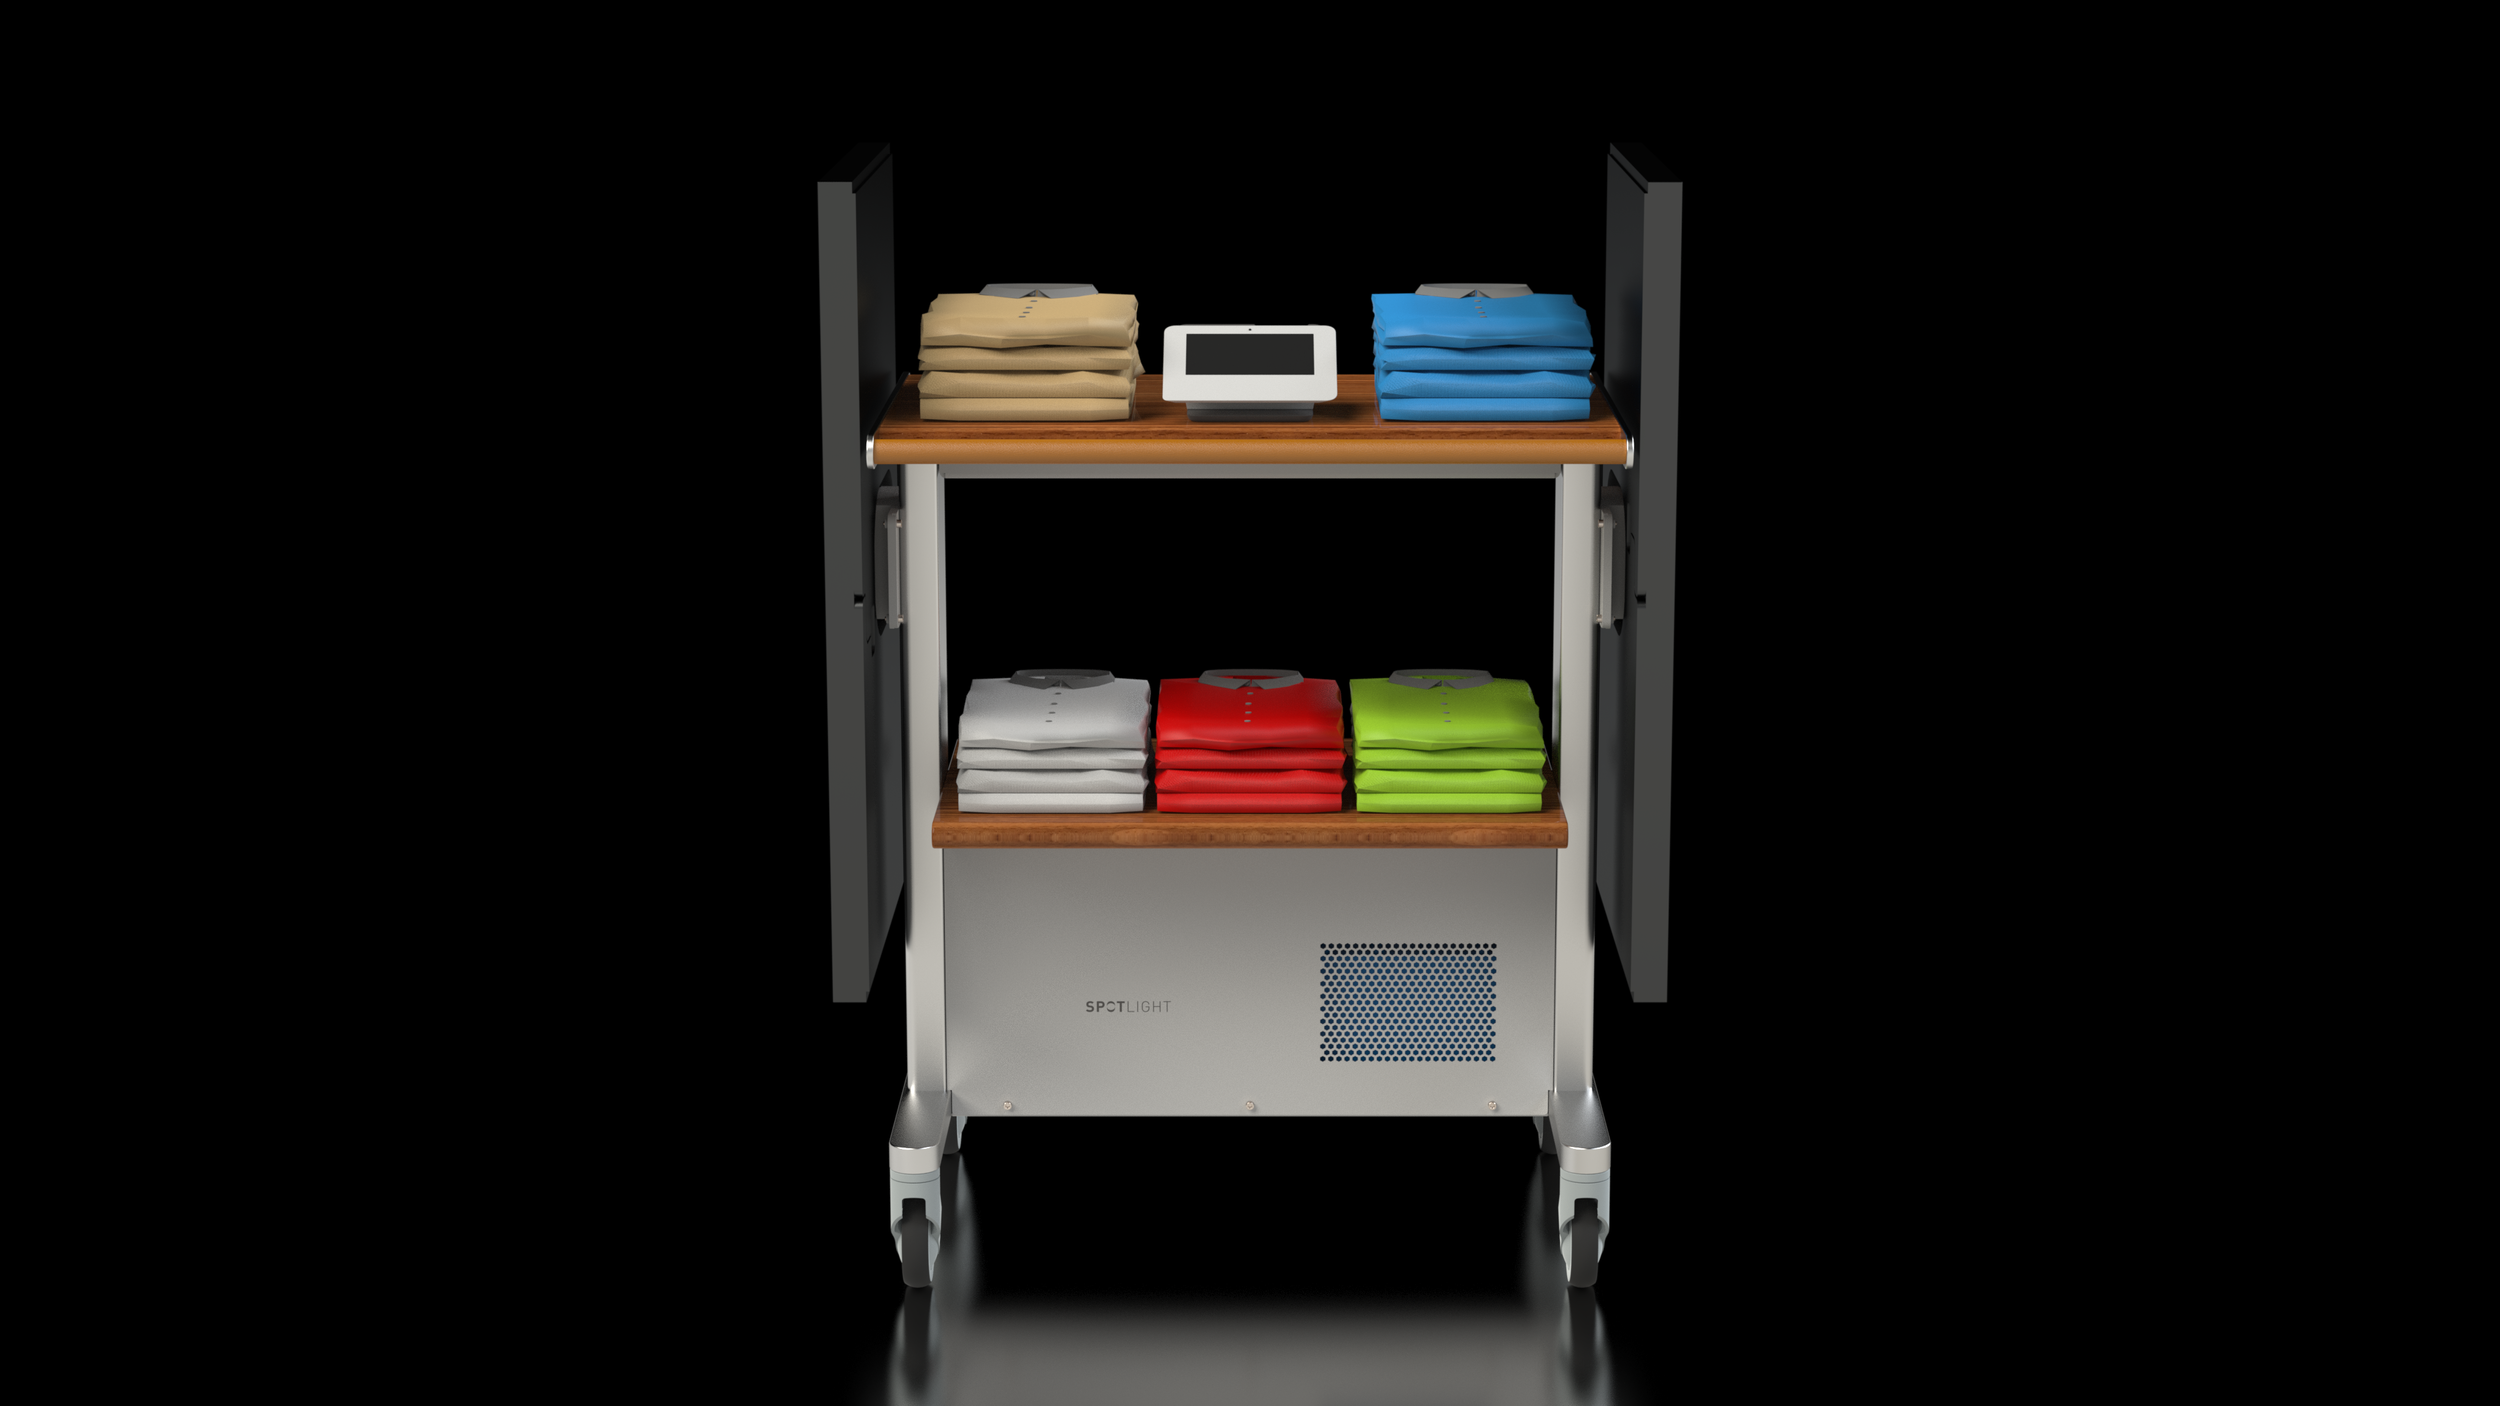 FIT-SPOTLIGHT-HALO-FOLDED CLOTHES 2.png